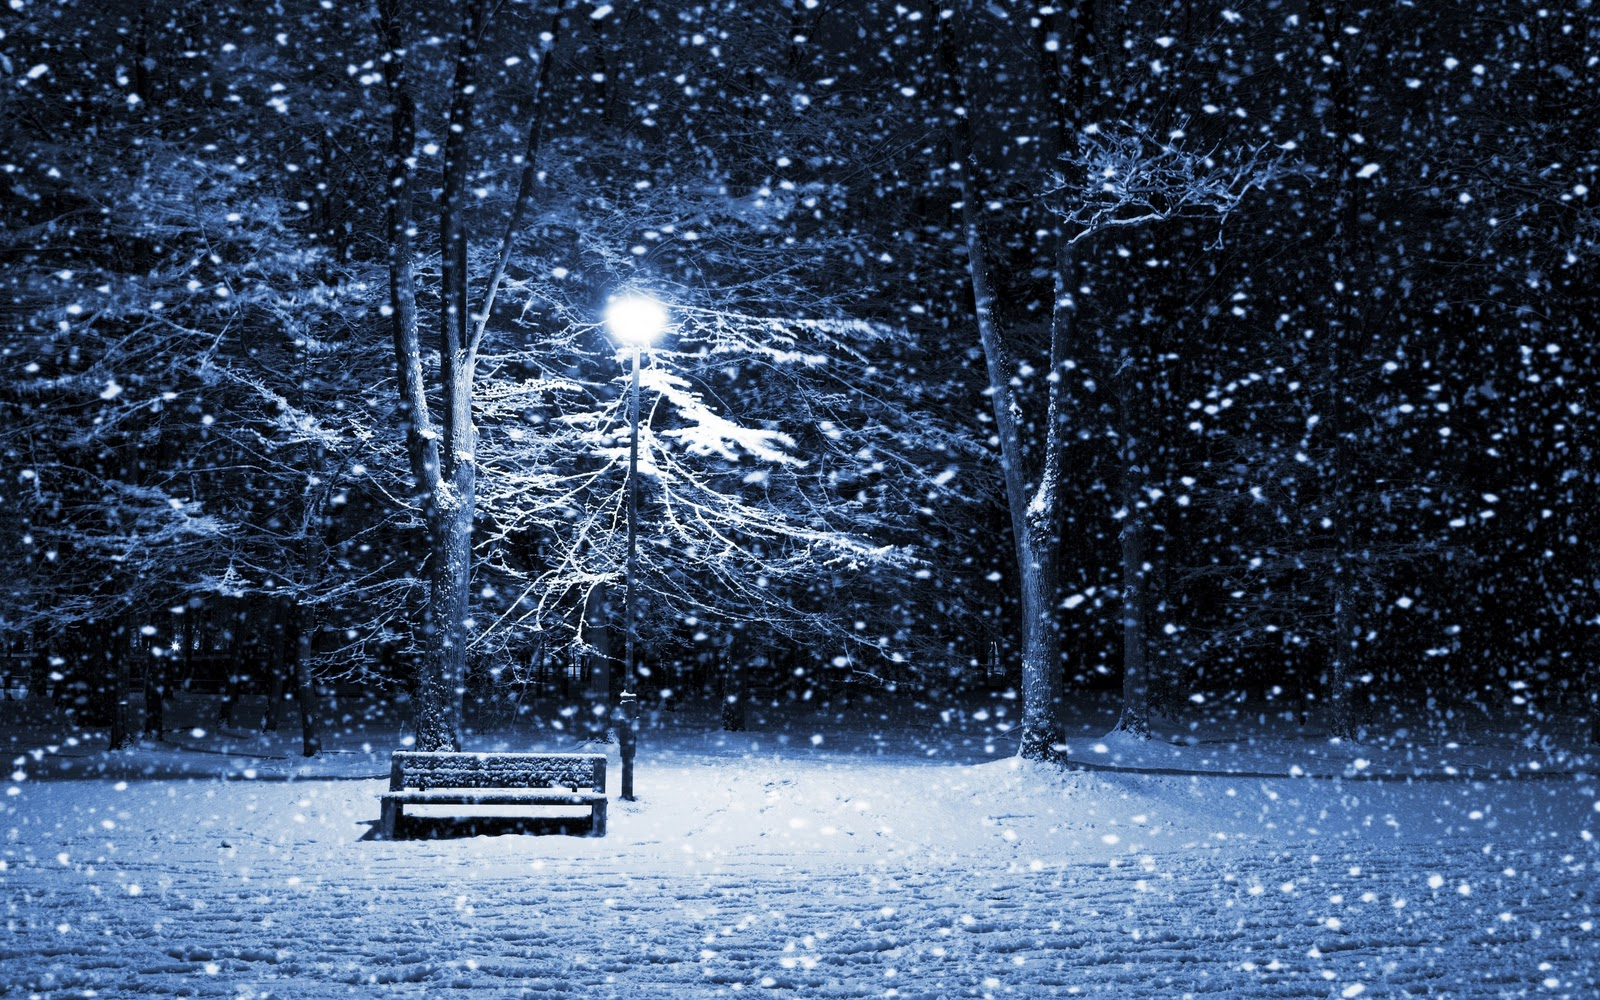 http://1.bp.blogspot.com/-uow6esPkA4I/Tw875p9IZqI/AAAAAAAAC3w/oMVBMUj00KY/s1600/Quiet+Winter+Night+HD+Wallpapers.jpeg